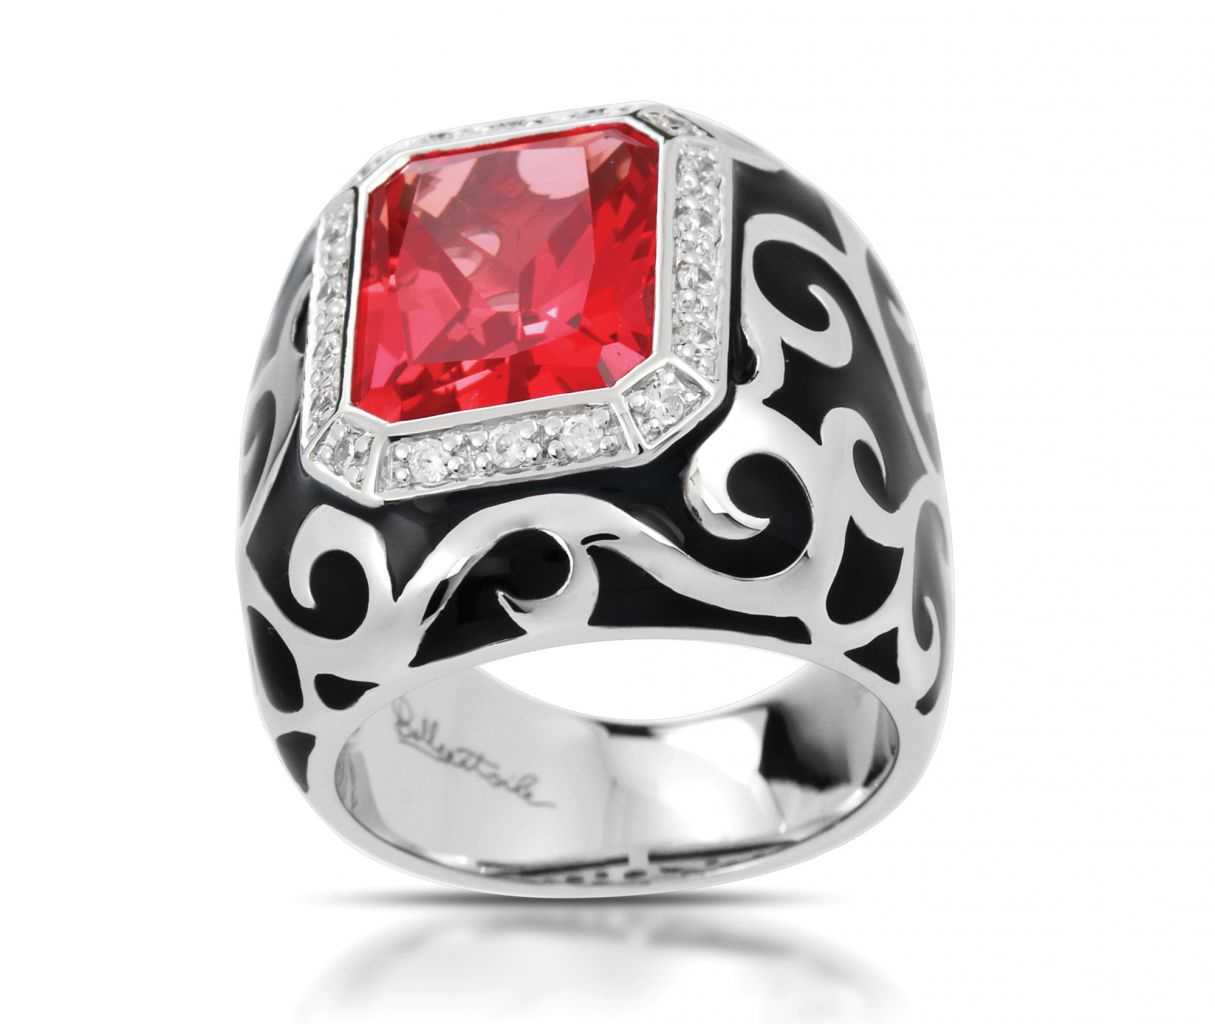 Belle Etoile Royale red stone ring